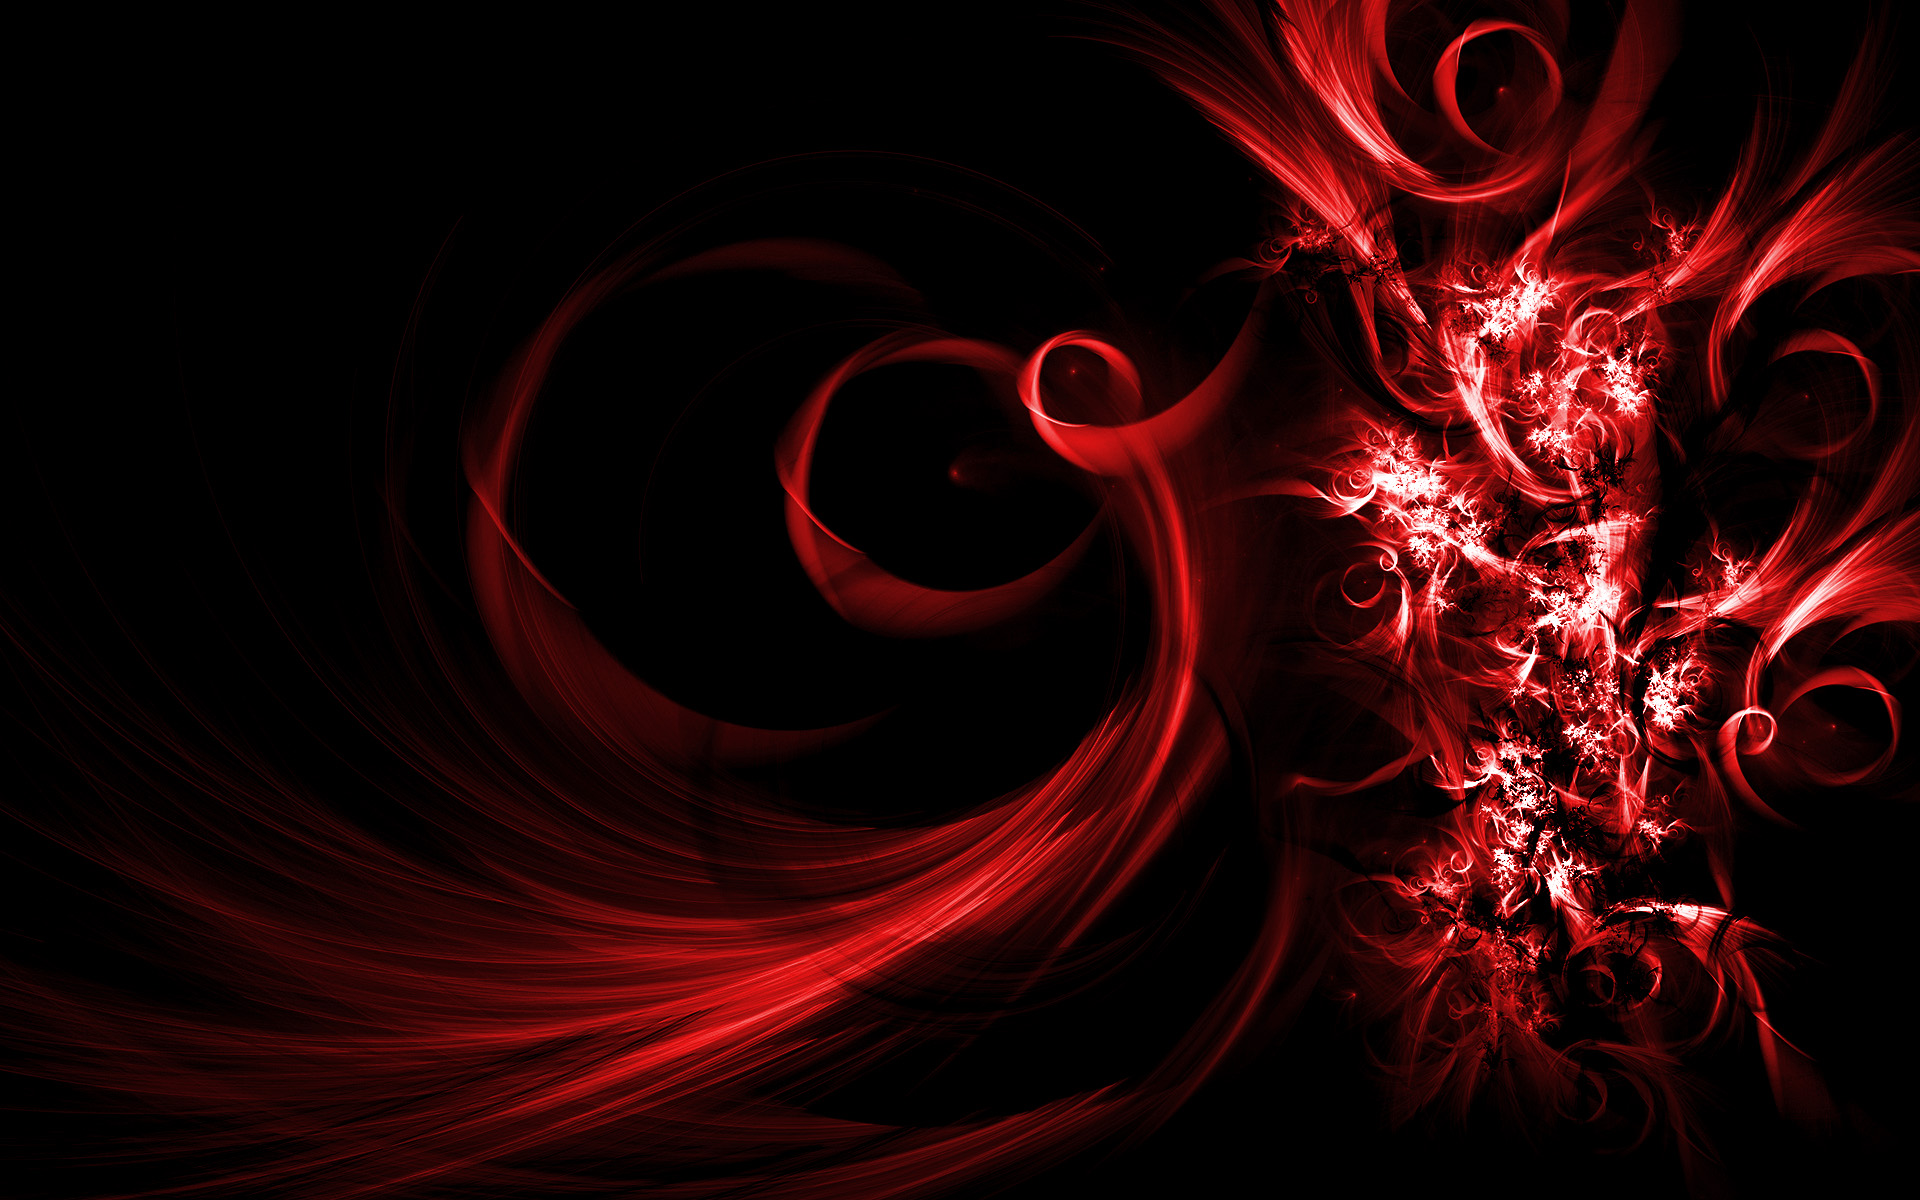 Hd Red Wallpapers